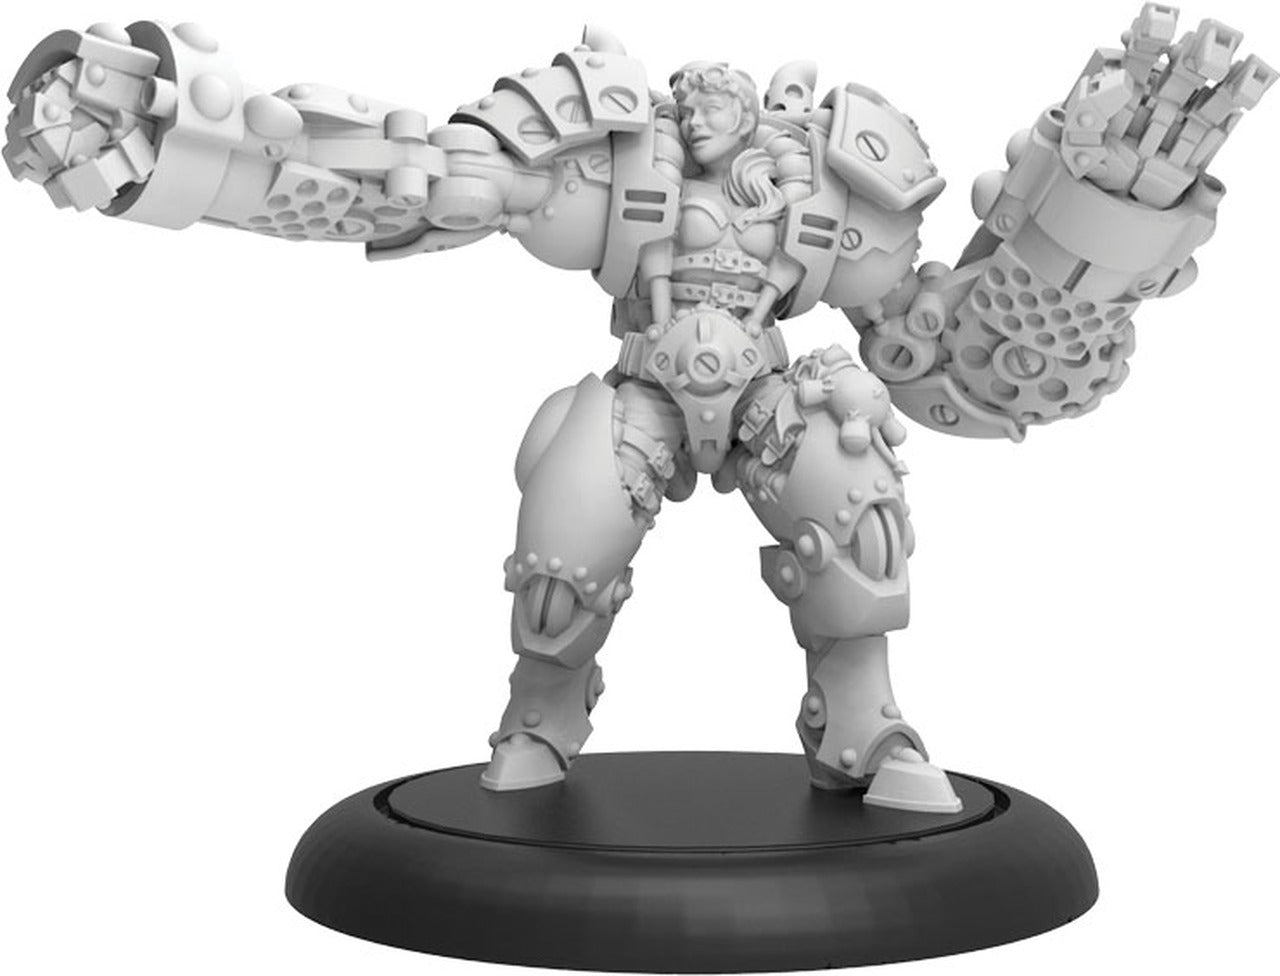 Riot Quest: Boss MacHorn Guard (Resin and White Metal)